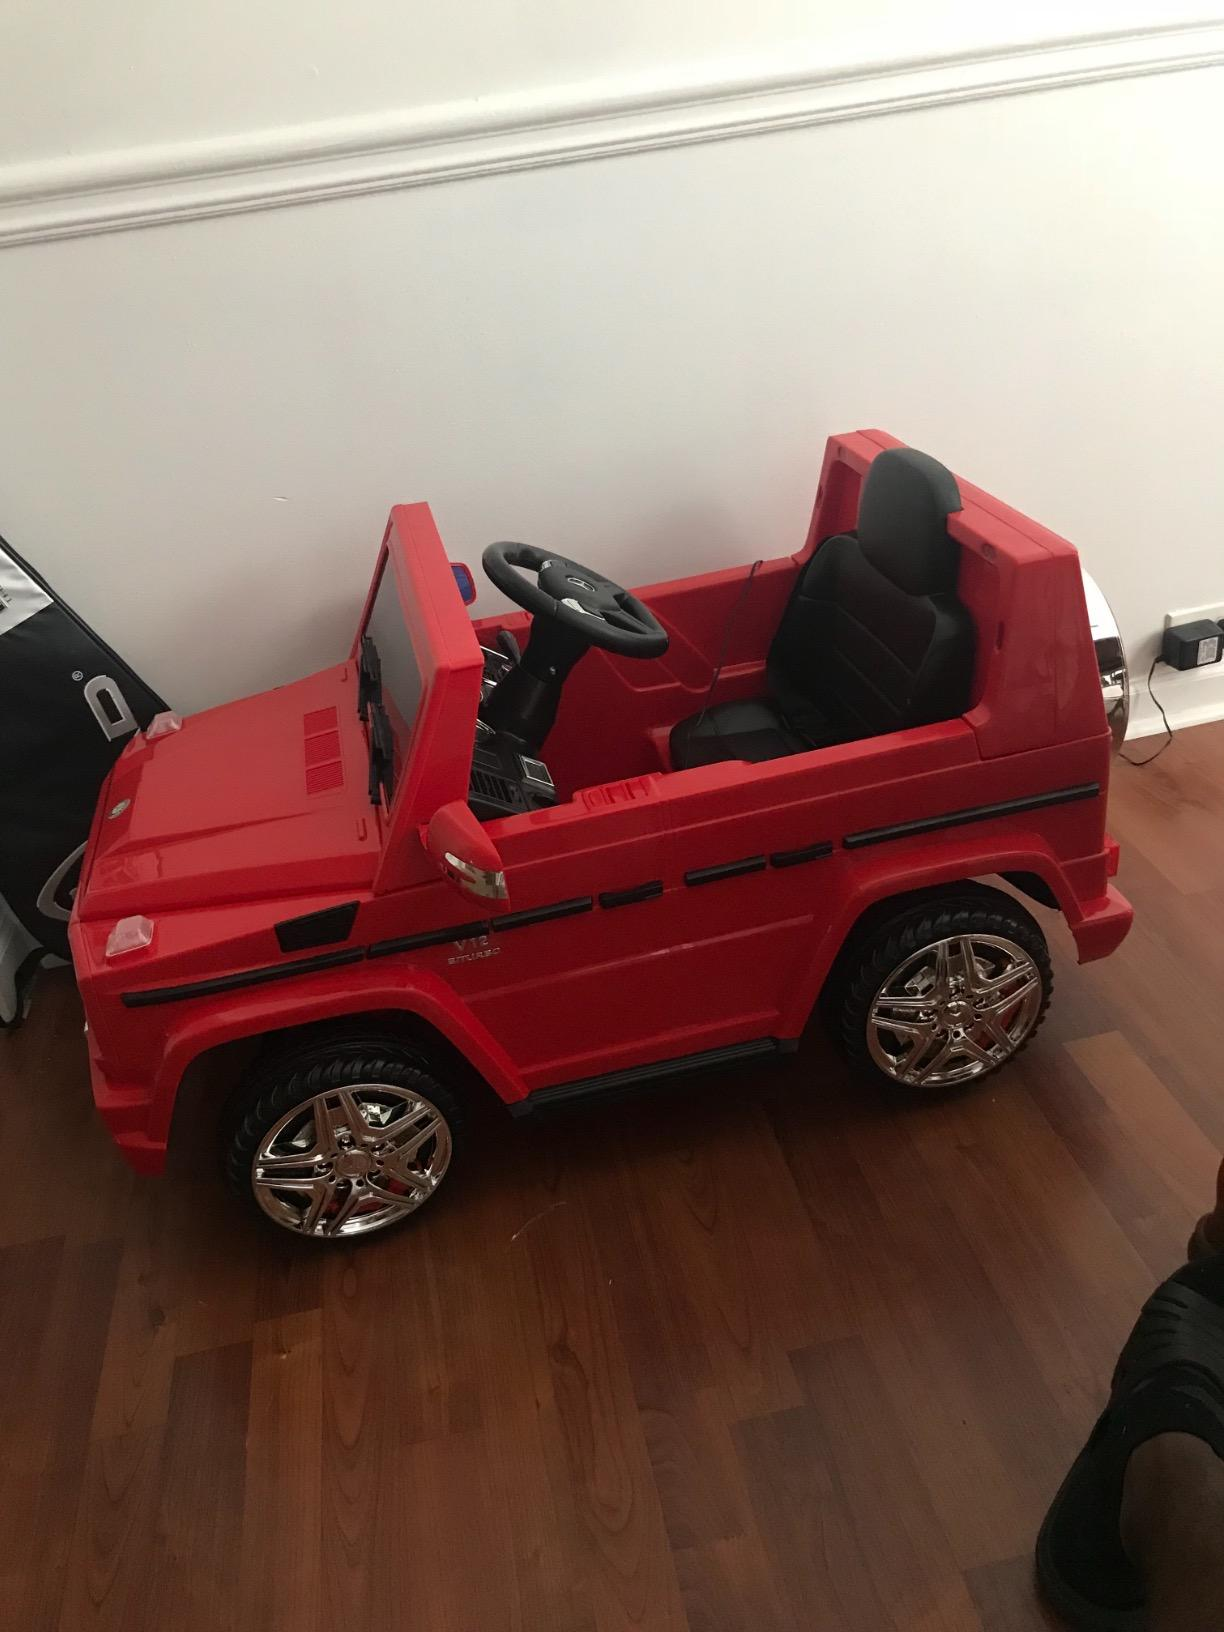 12V Licensed Mercedes Benz G65 Electric Ride on Car for Kids with Remote Control, Red photo review